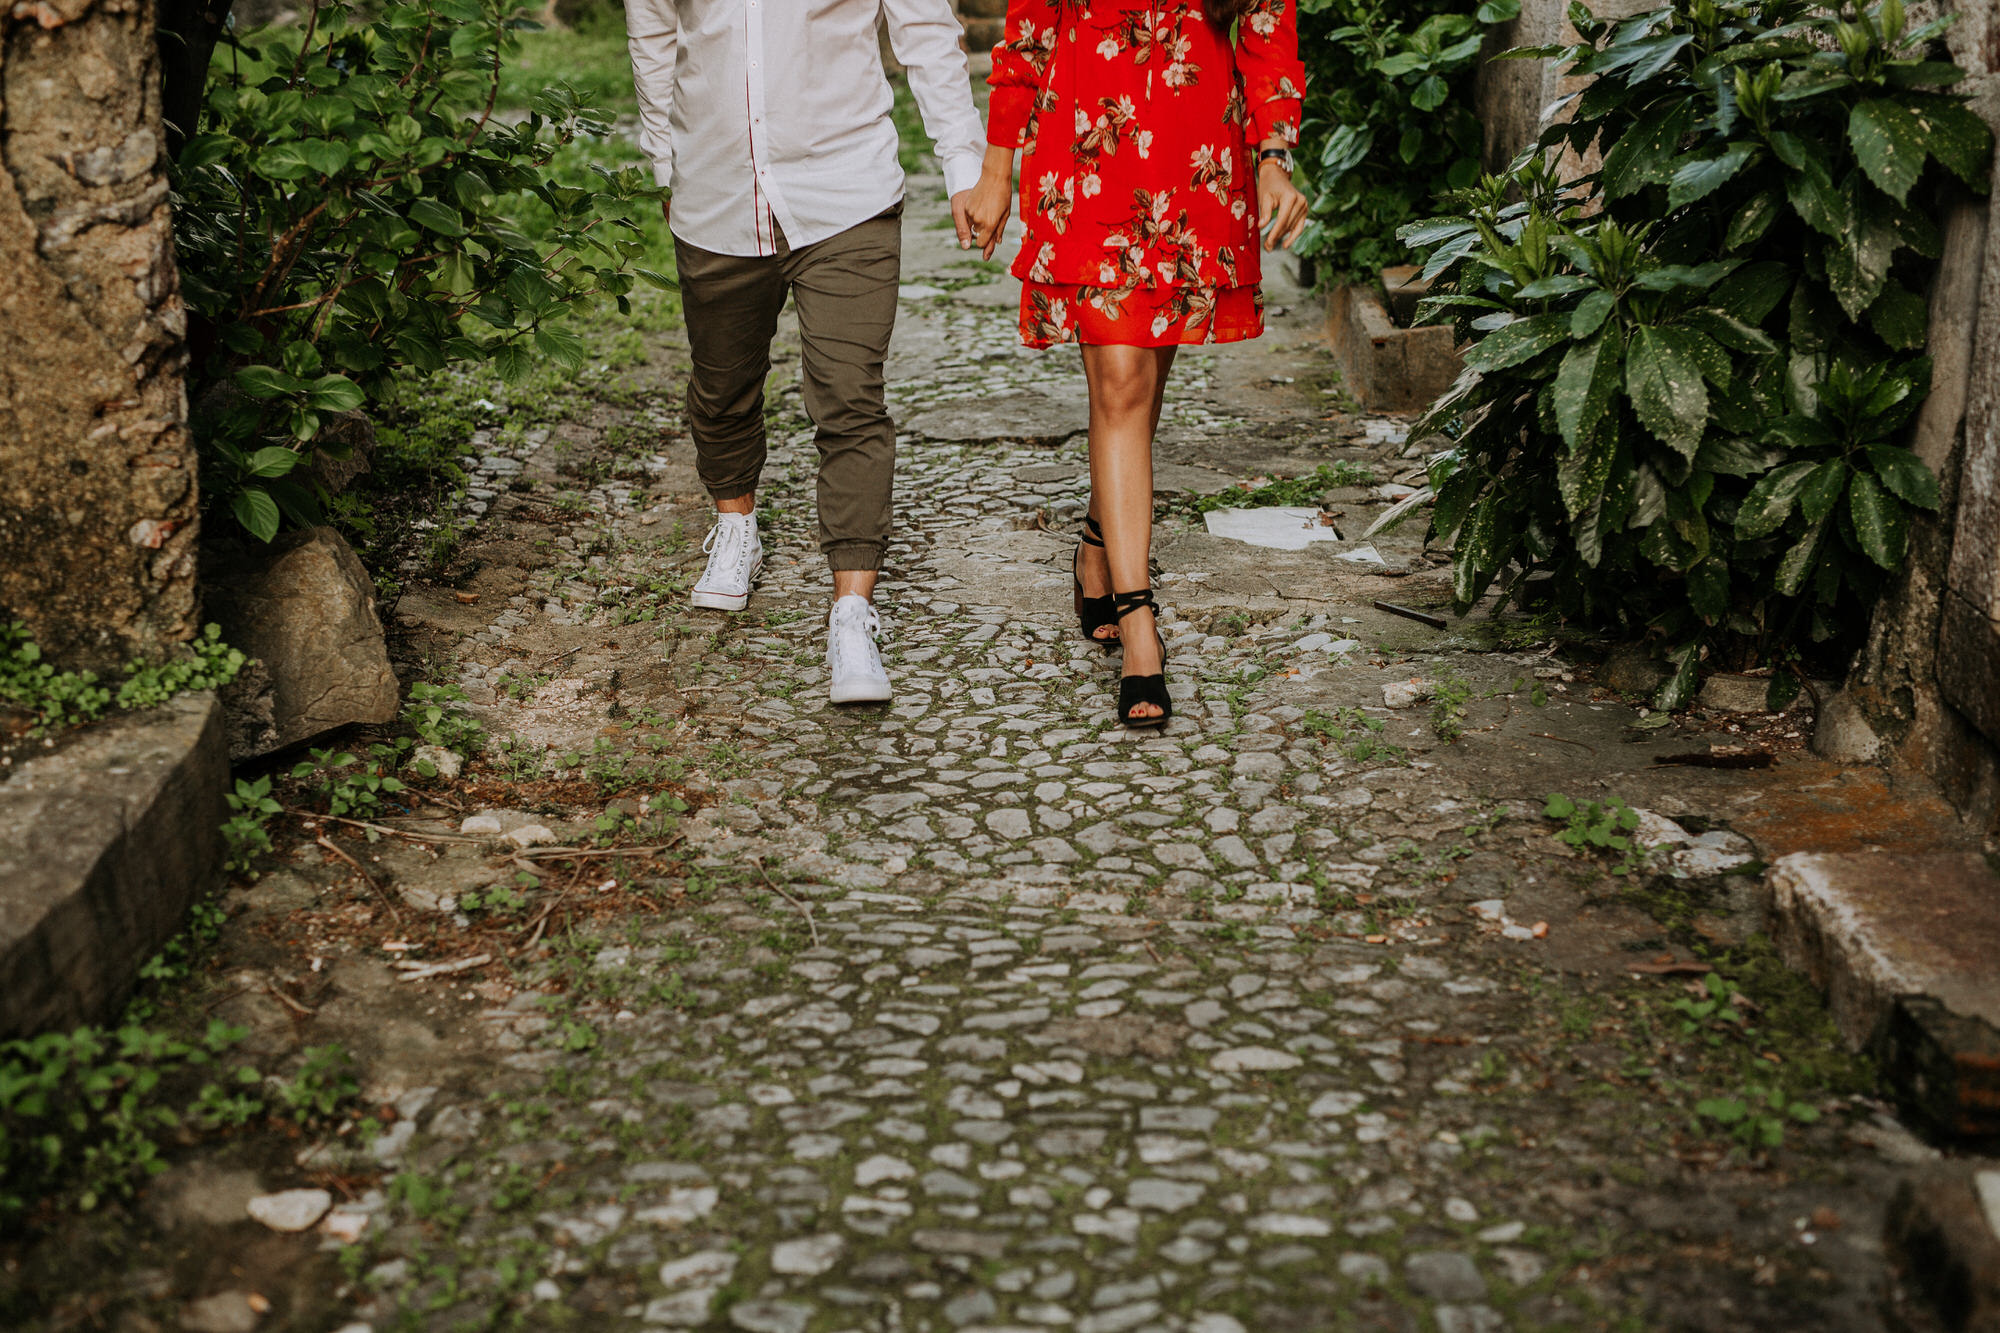 05-sessao-noivado-engagement-love-session-Sintra-lisboa-town-wedding-photography-photographer-natural-best-venue-planner-destination-filipe-santiago-fotografia-lifestyle-documentary